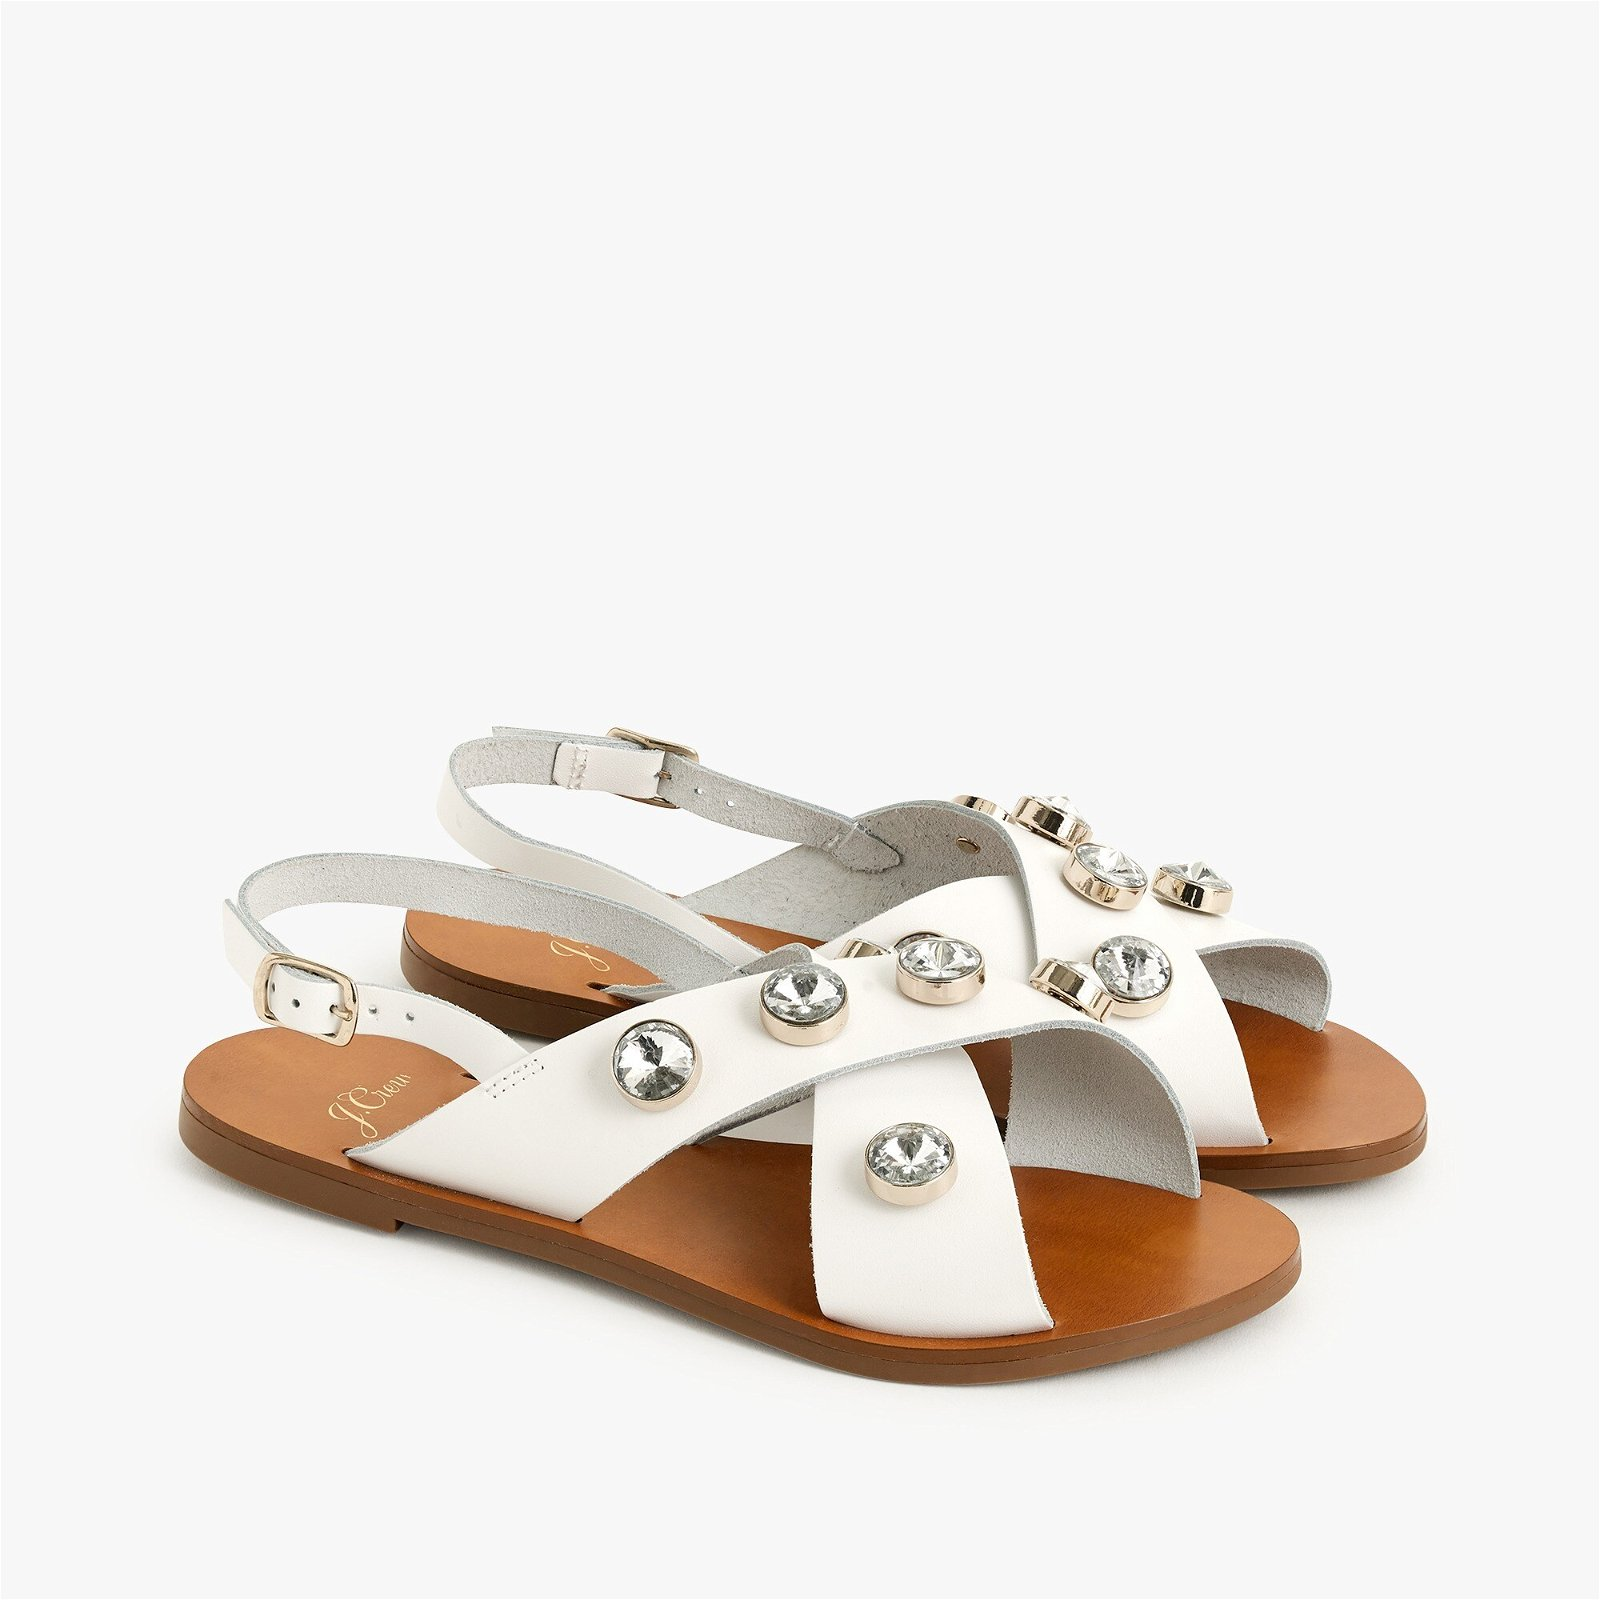 Cross-strap slingback sandals with jewels